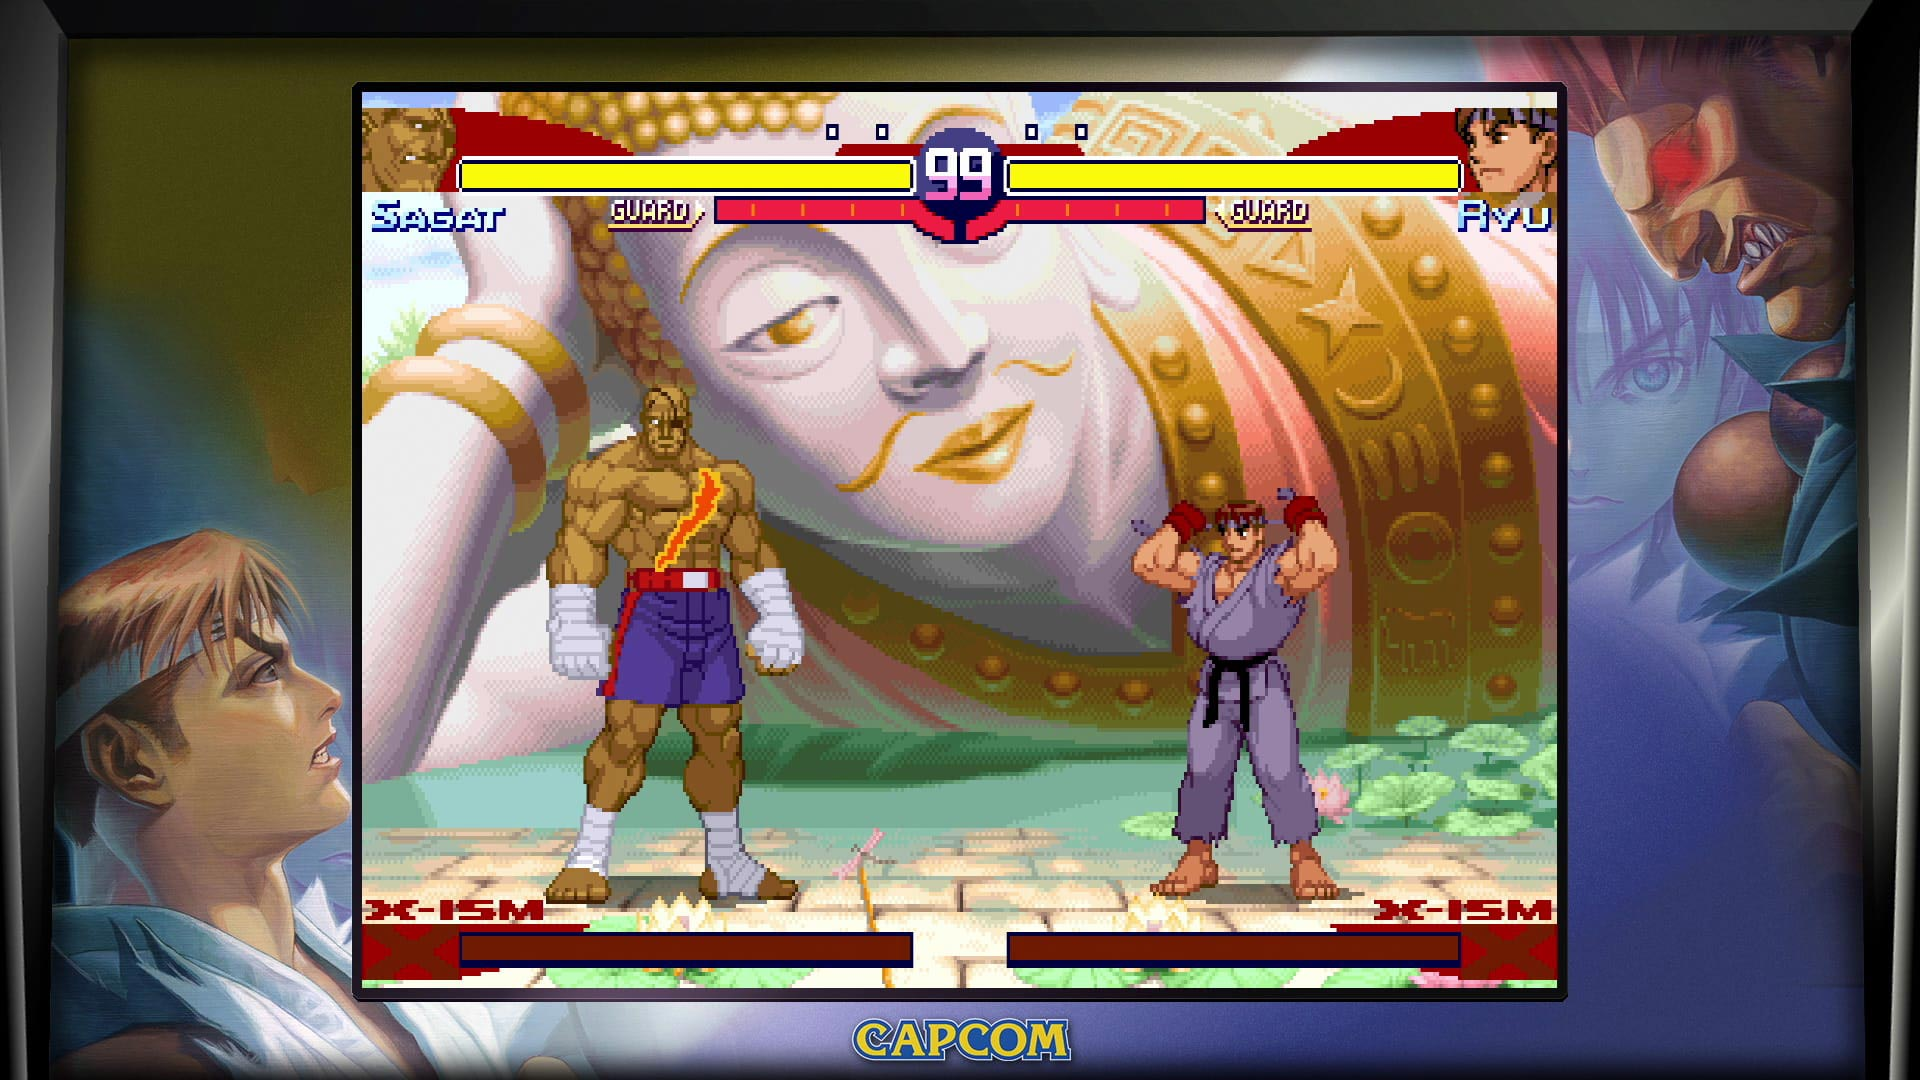 Street Fighter 30th Anniversary Collection images 9 out of 17 image gallery